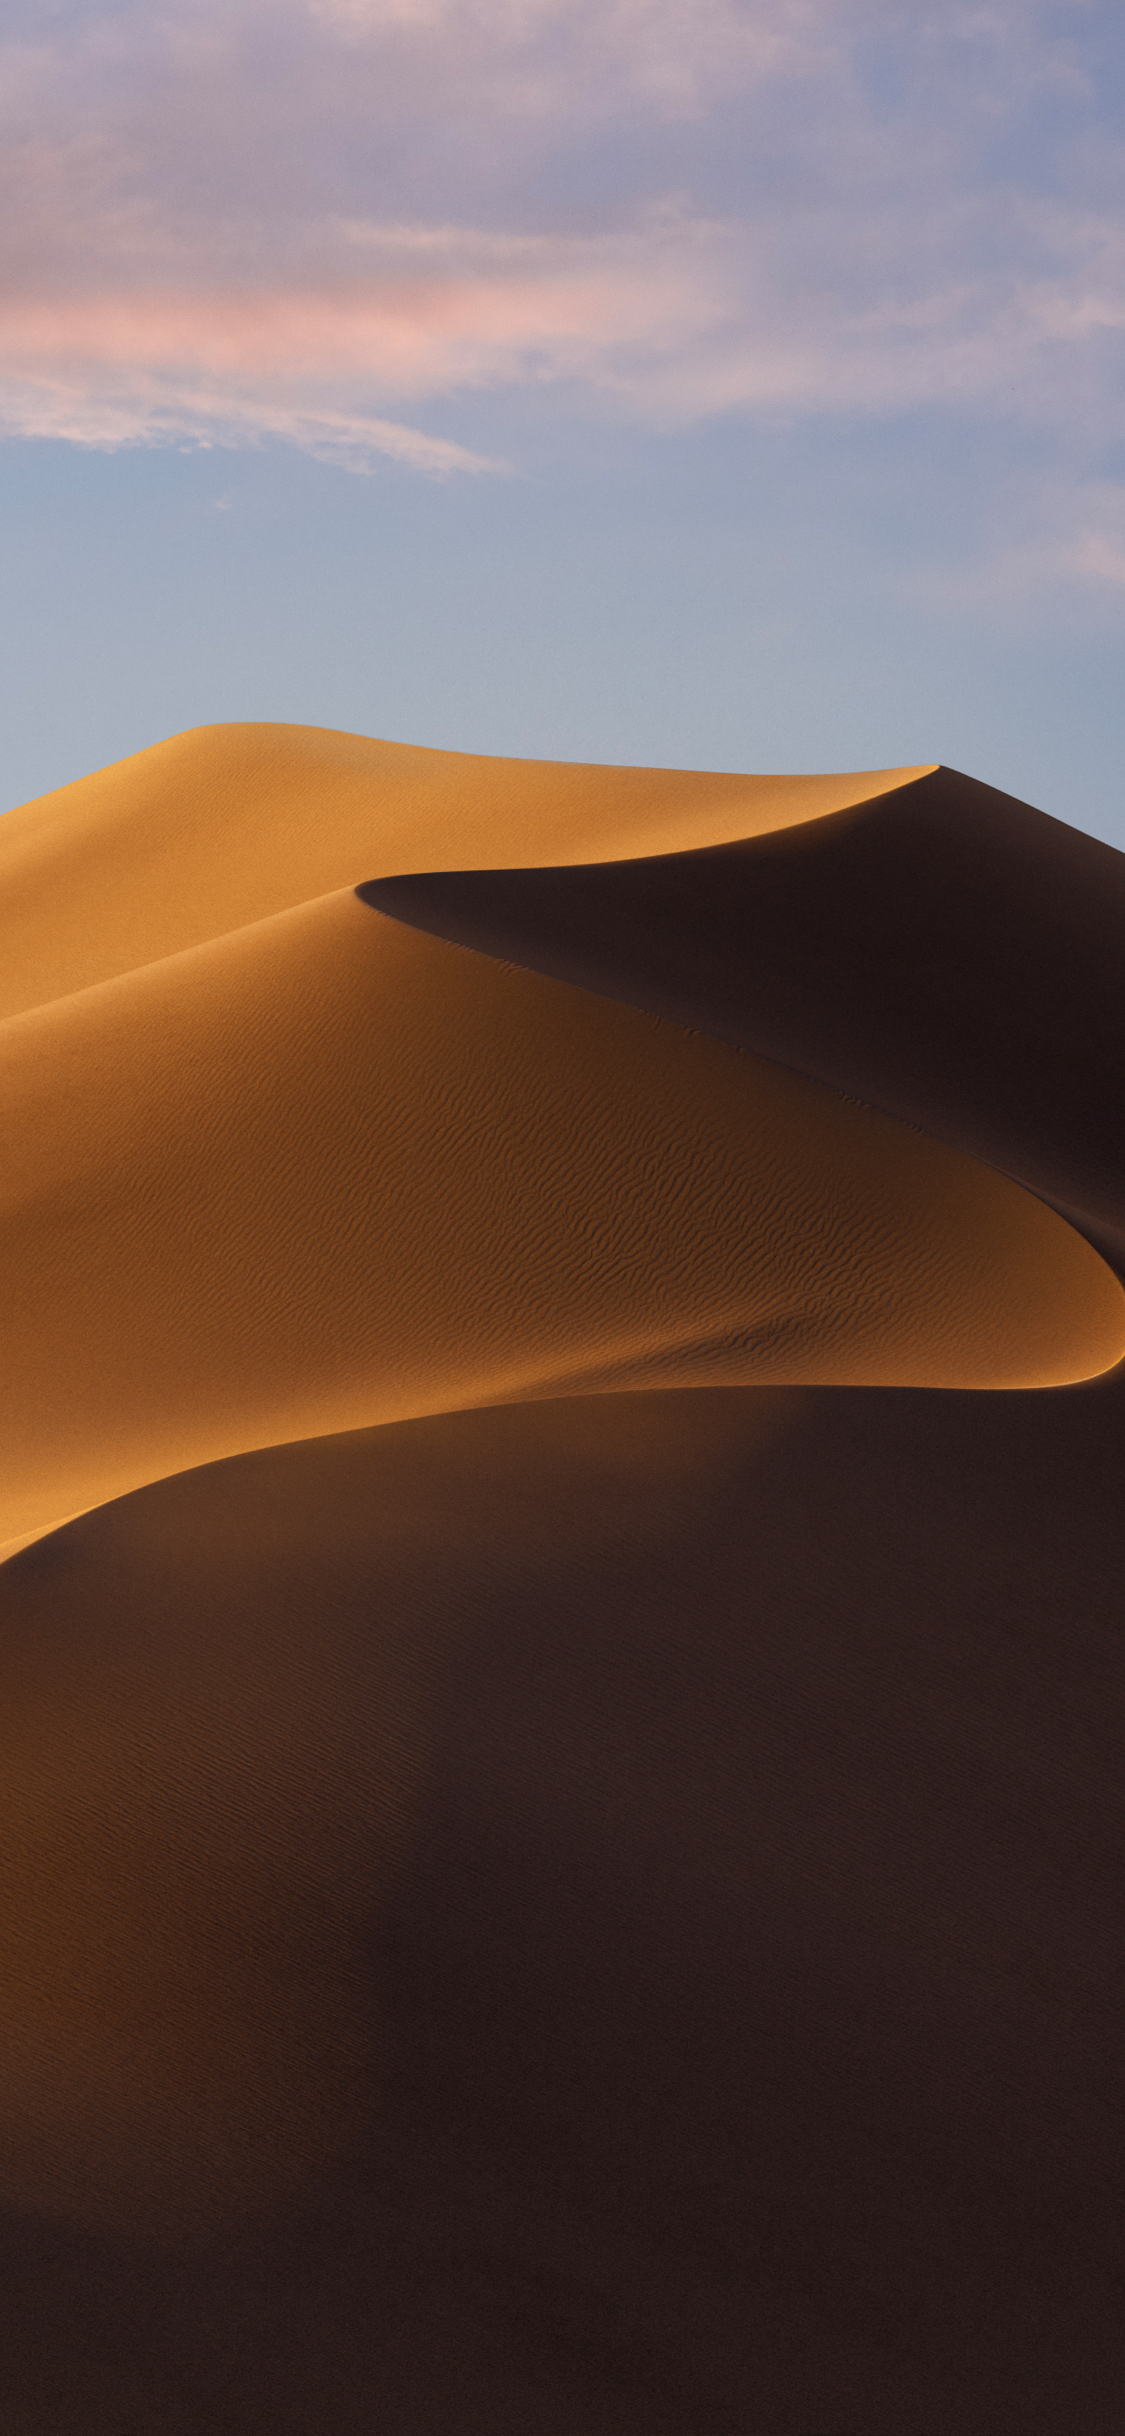 Iphone X 2018 Wallpaper Download Macos Mojave Wallpapers For Desktop And Iphone